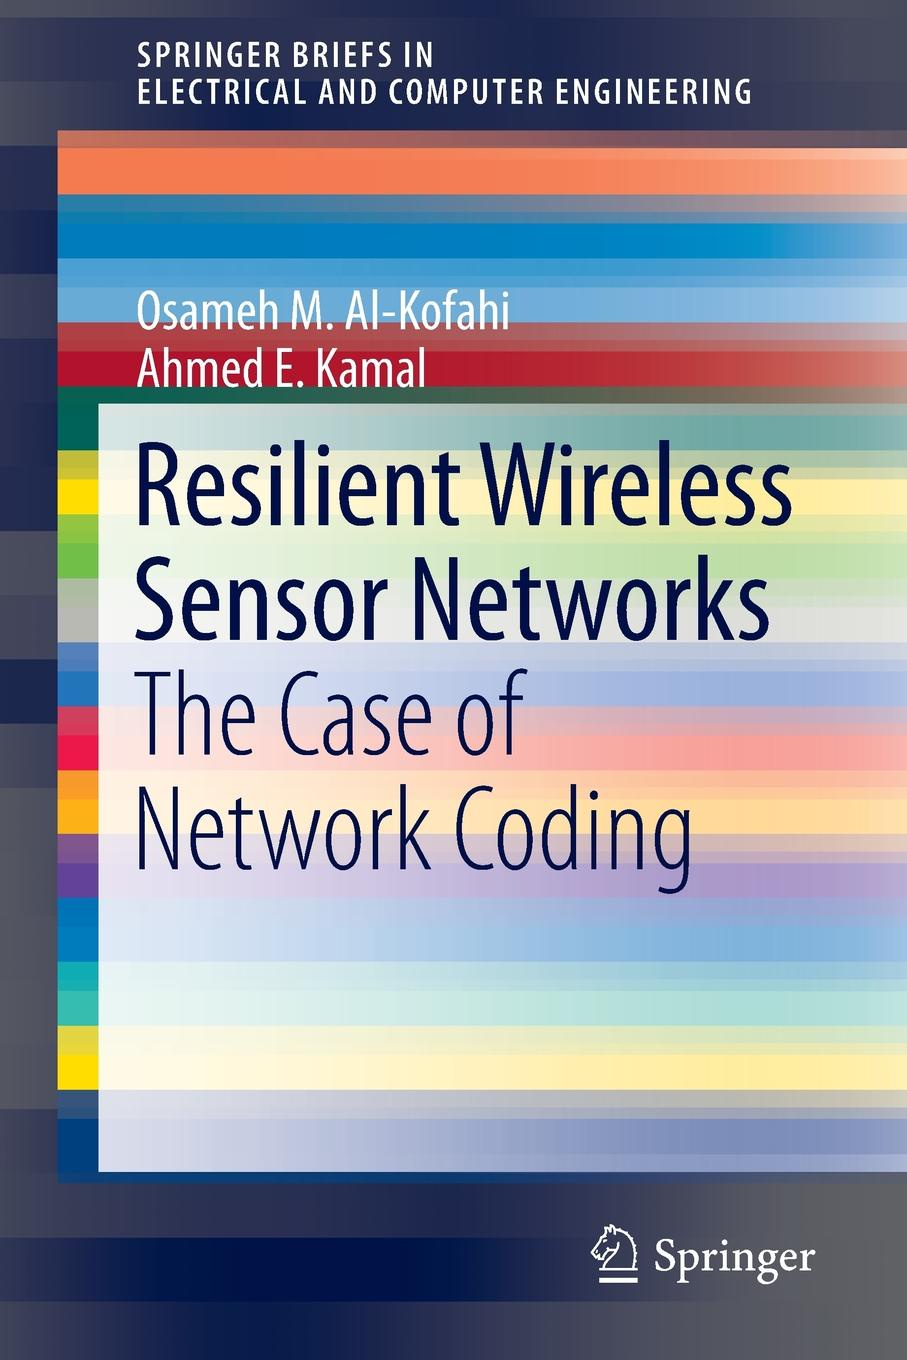 Osameh M. Al-Kofahi, Ahmed E. Kamal Resilient Wireless Sensor Networks. The Case of Network Coding poellabauer christian fundamentals of wireless sensor networks theory and practice